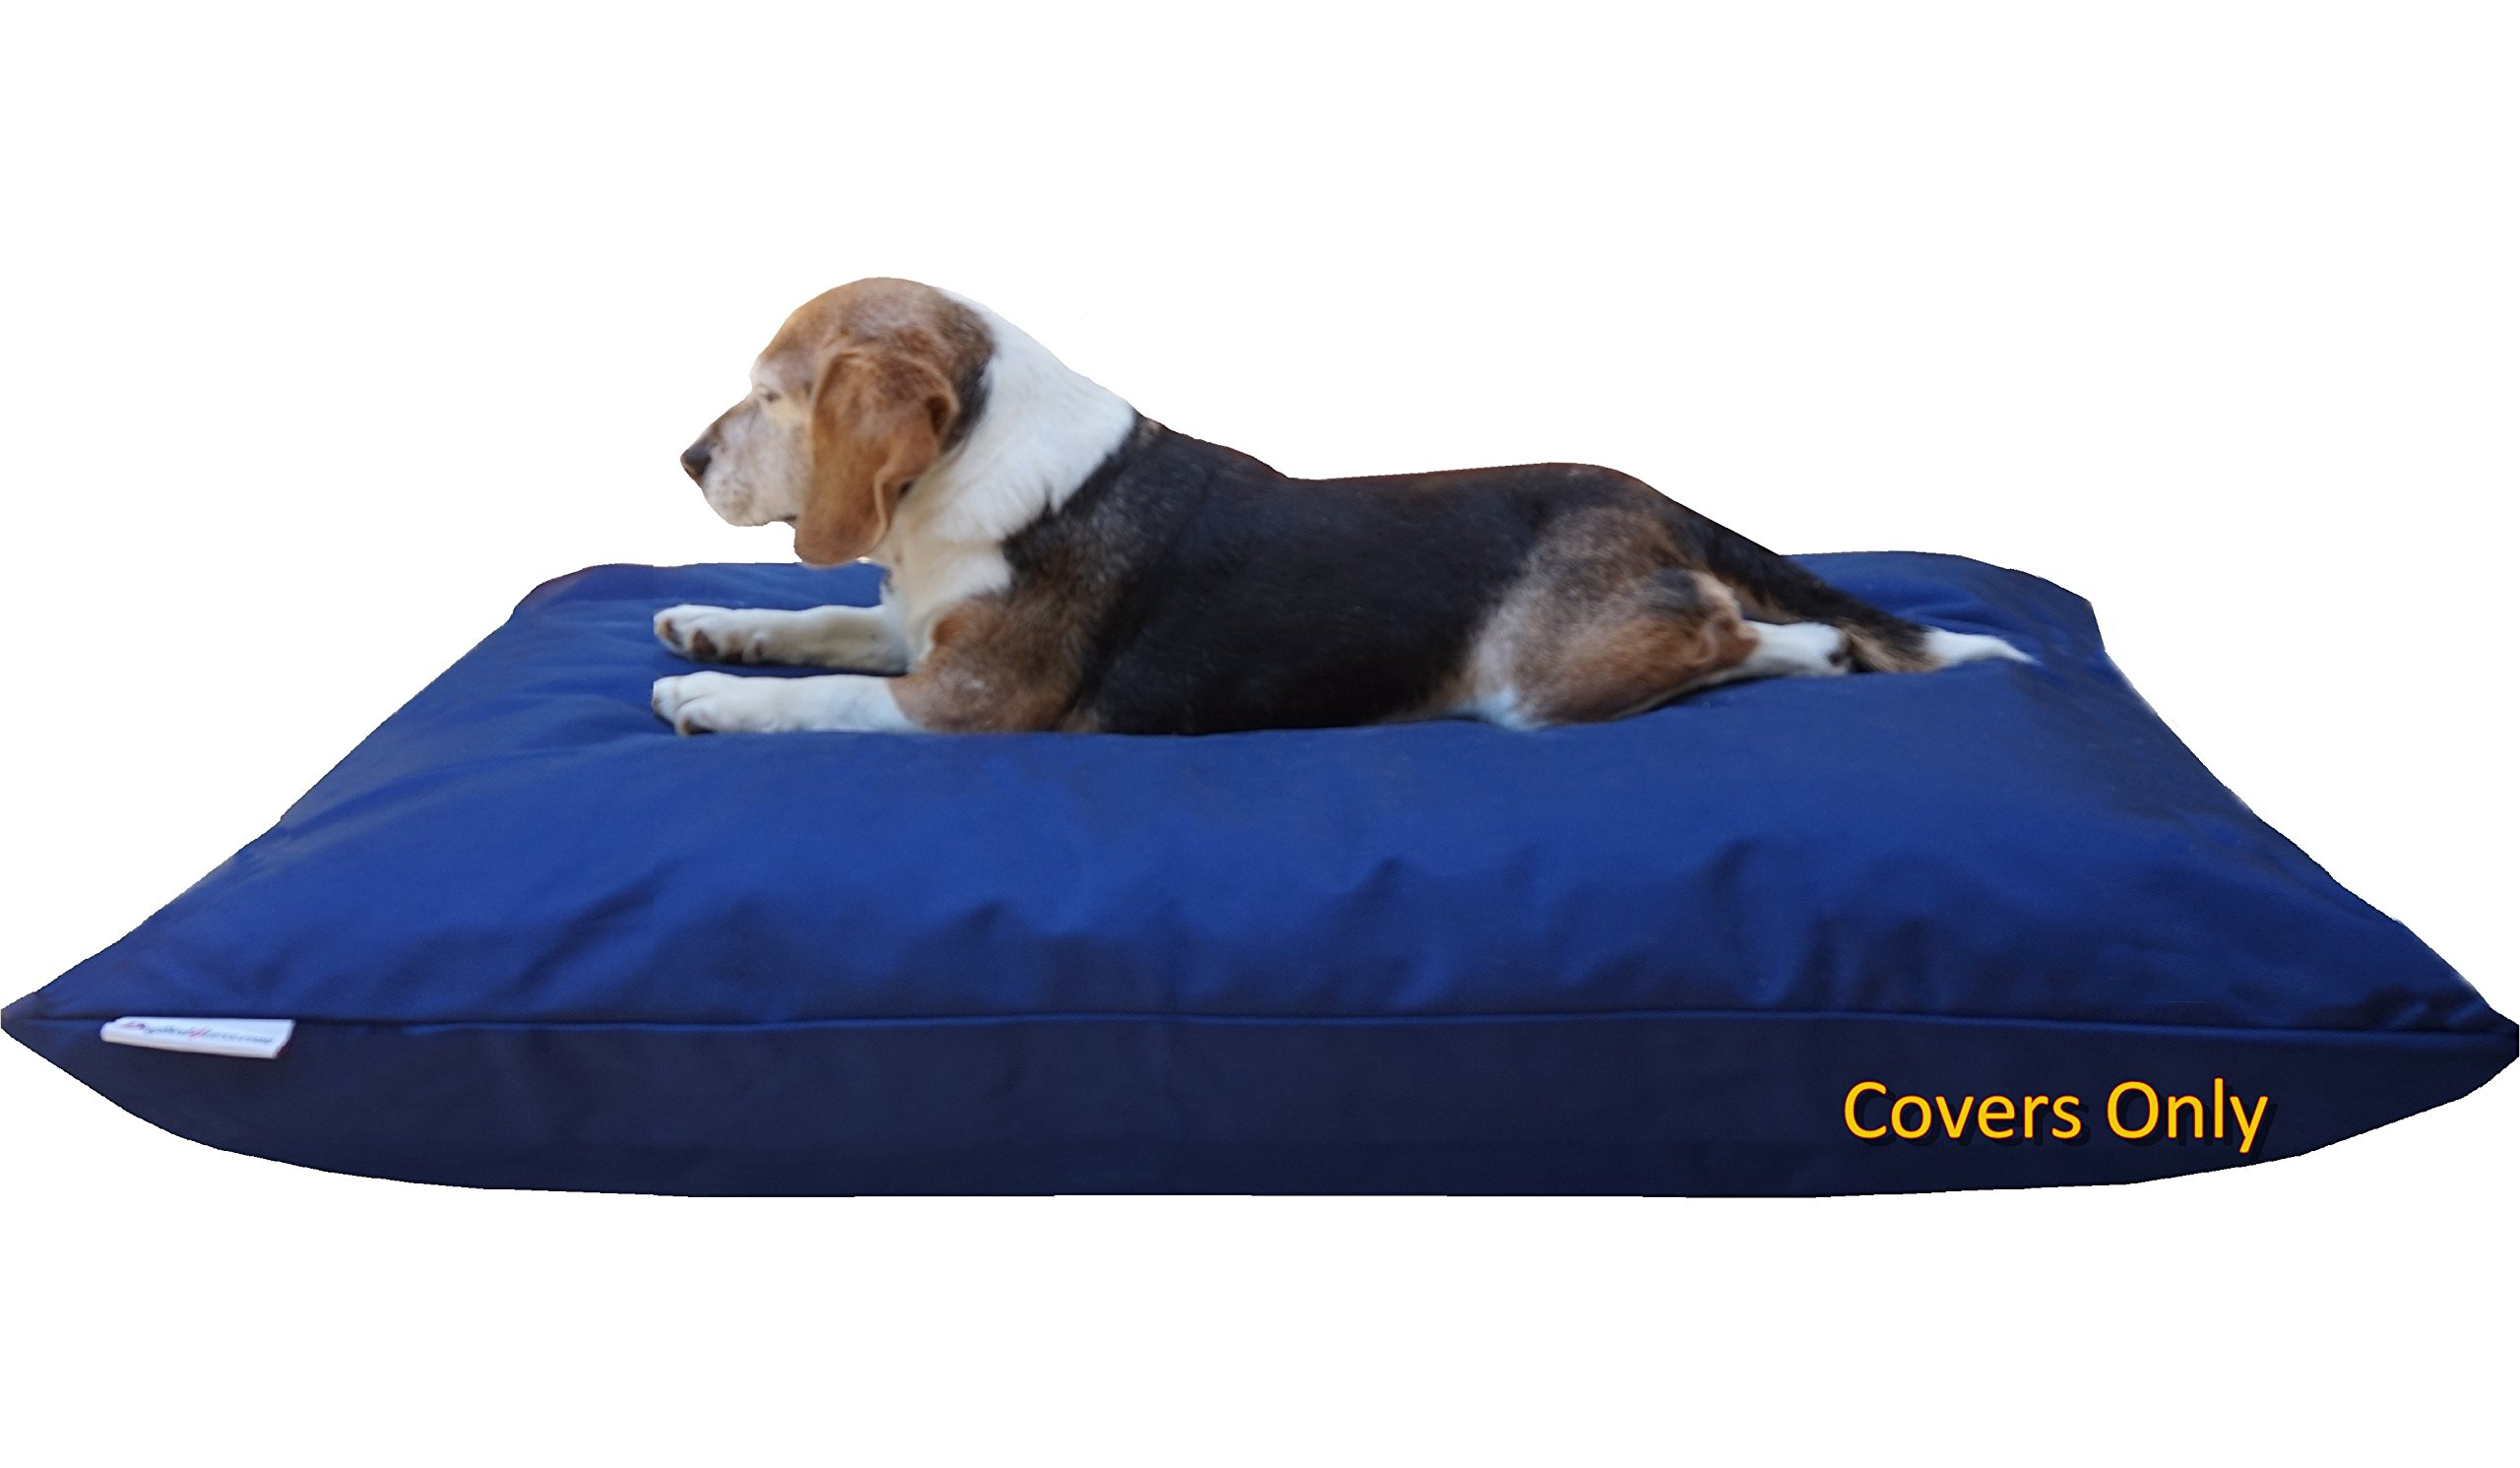 Dogbed4less Do It Yourself DIY Pet Bed Pillow Duvet 1680 Nylon Durable Cover and Waterproof Internal case for Dog/Cat at Large 48''X29'' Blue Color - Covers only